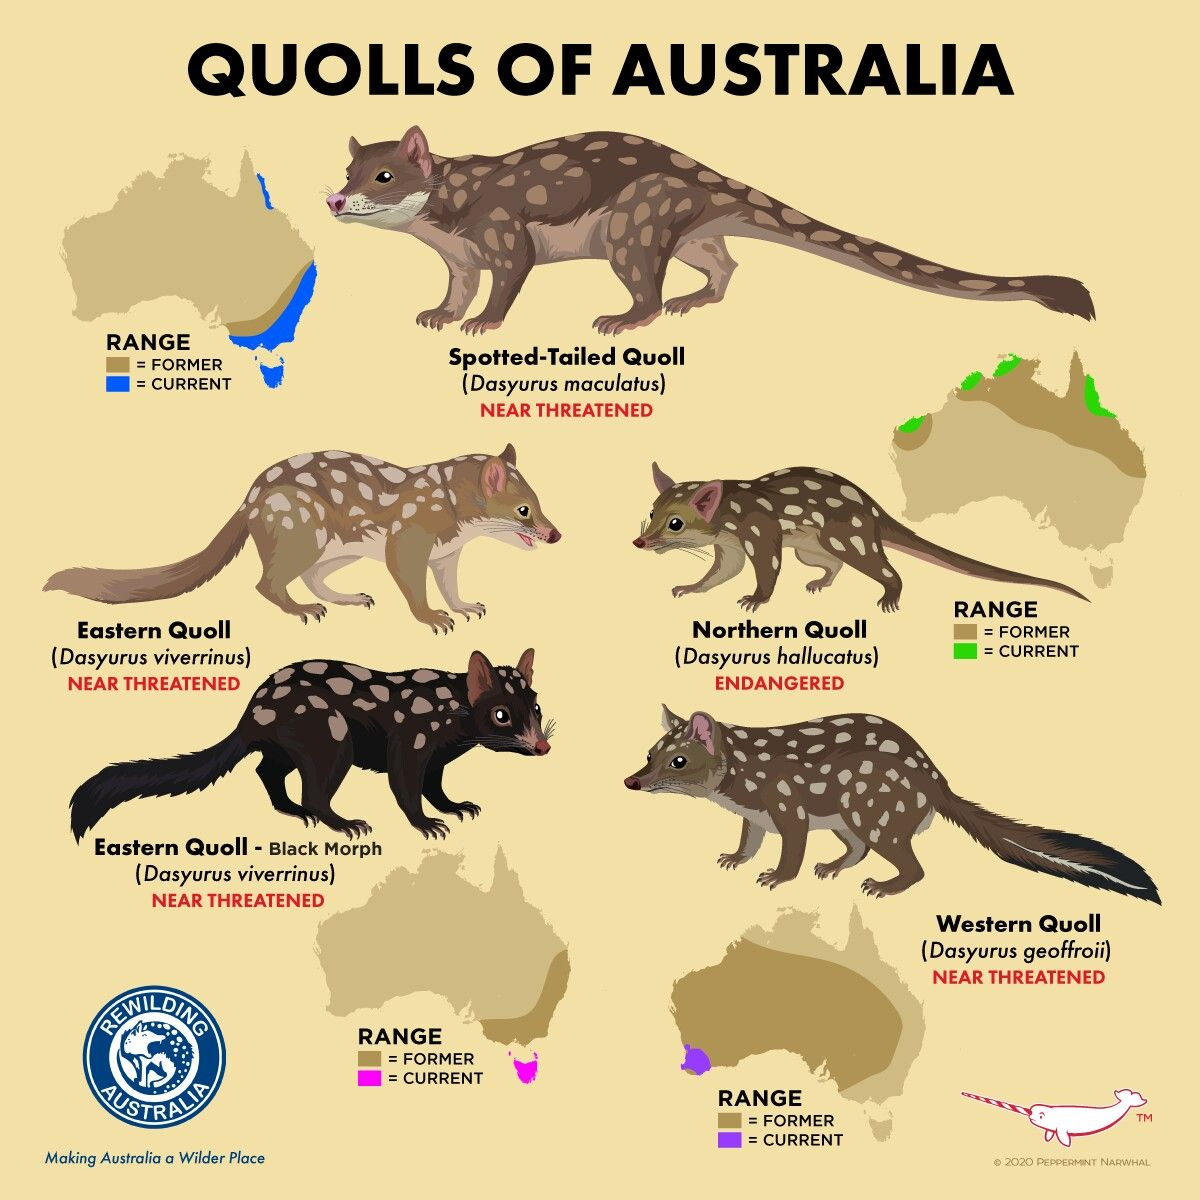 Pin By Cuongtran On Animals In 2020 Quoll Australia Animals Rare Animals